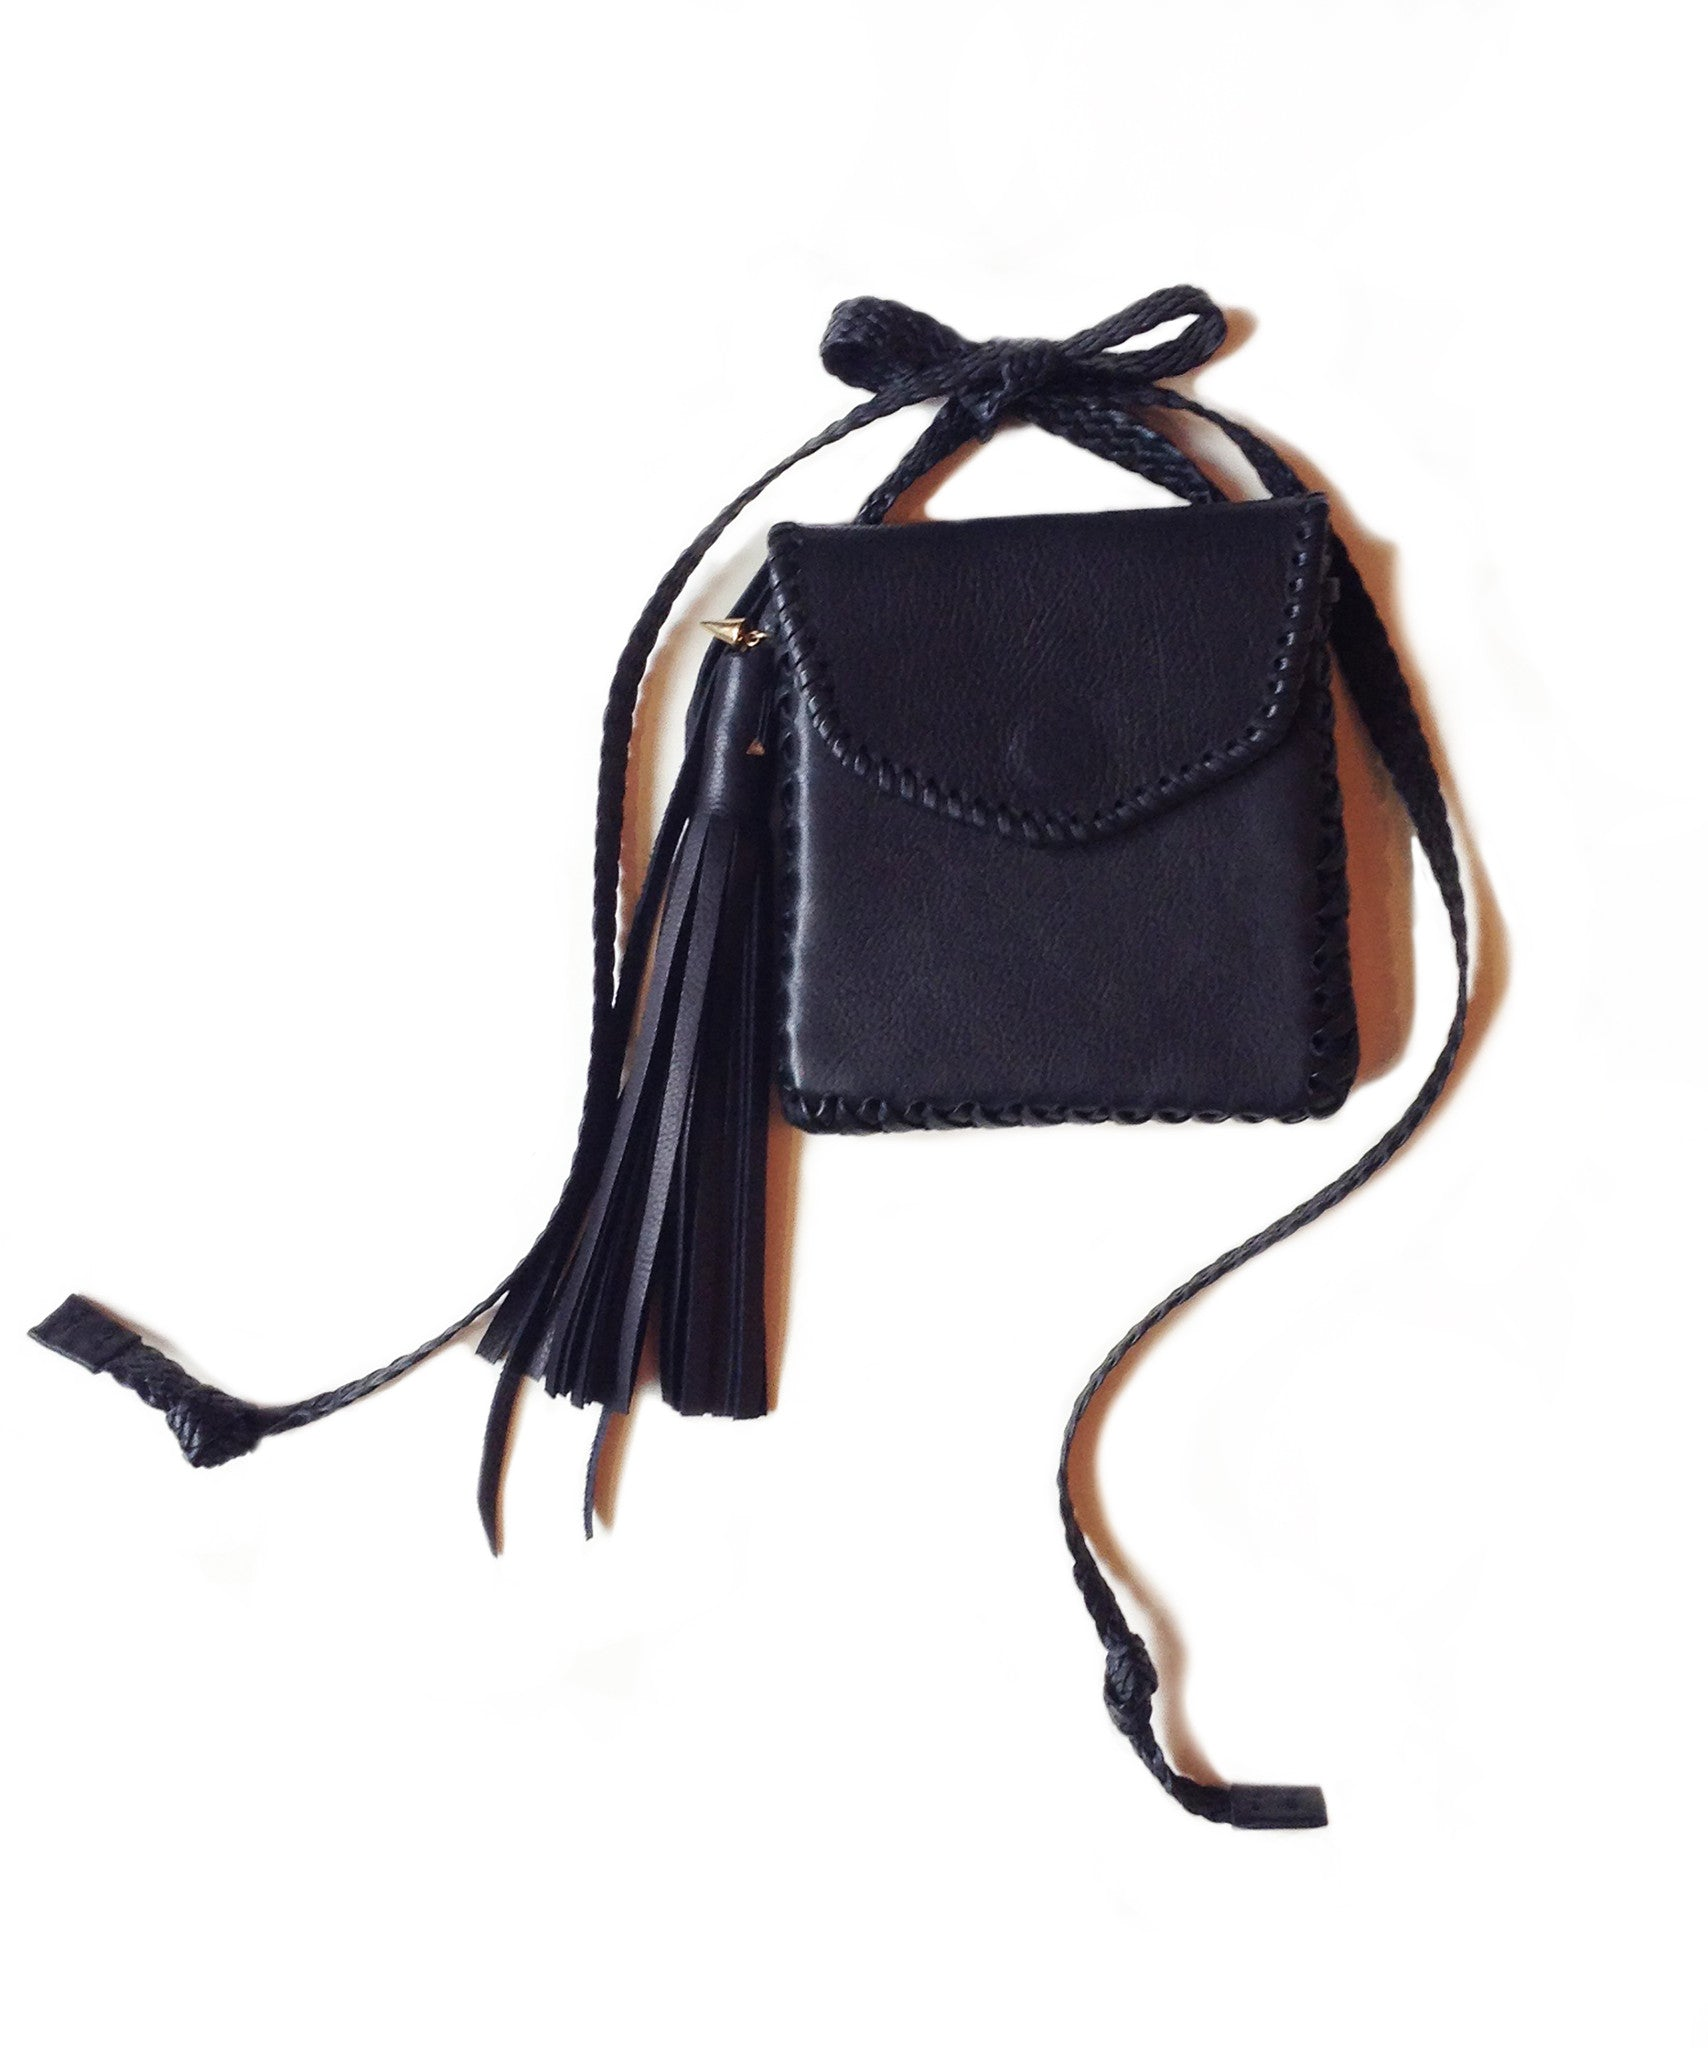 Little Sorel Whipstitch Belt Bag Black Leather Wendy Nichol Handbag Purse Designer Handmade in NYC New York City cross body pouch Essentials going out dance party clubbing wallet braided strap waist bag Envelope Flap Magnet Magnetic Whipstitch edge back pocket fringe Tassels adjustable strap High Quality Leather